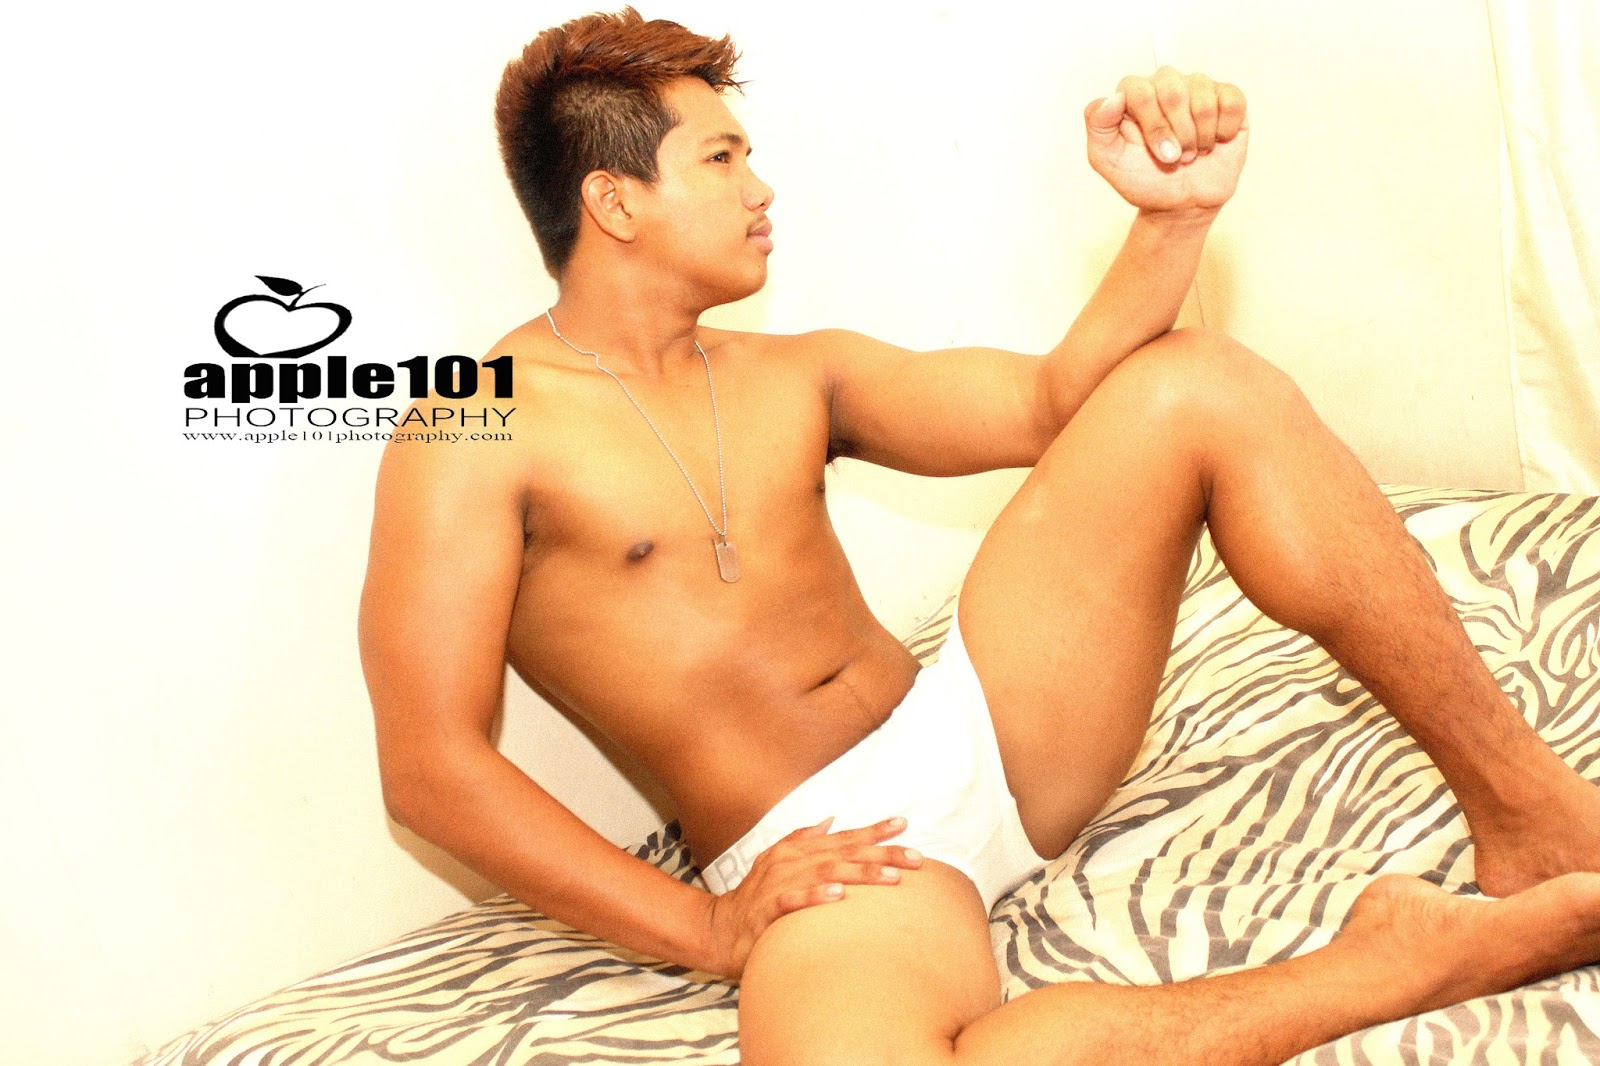 masseur m escort